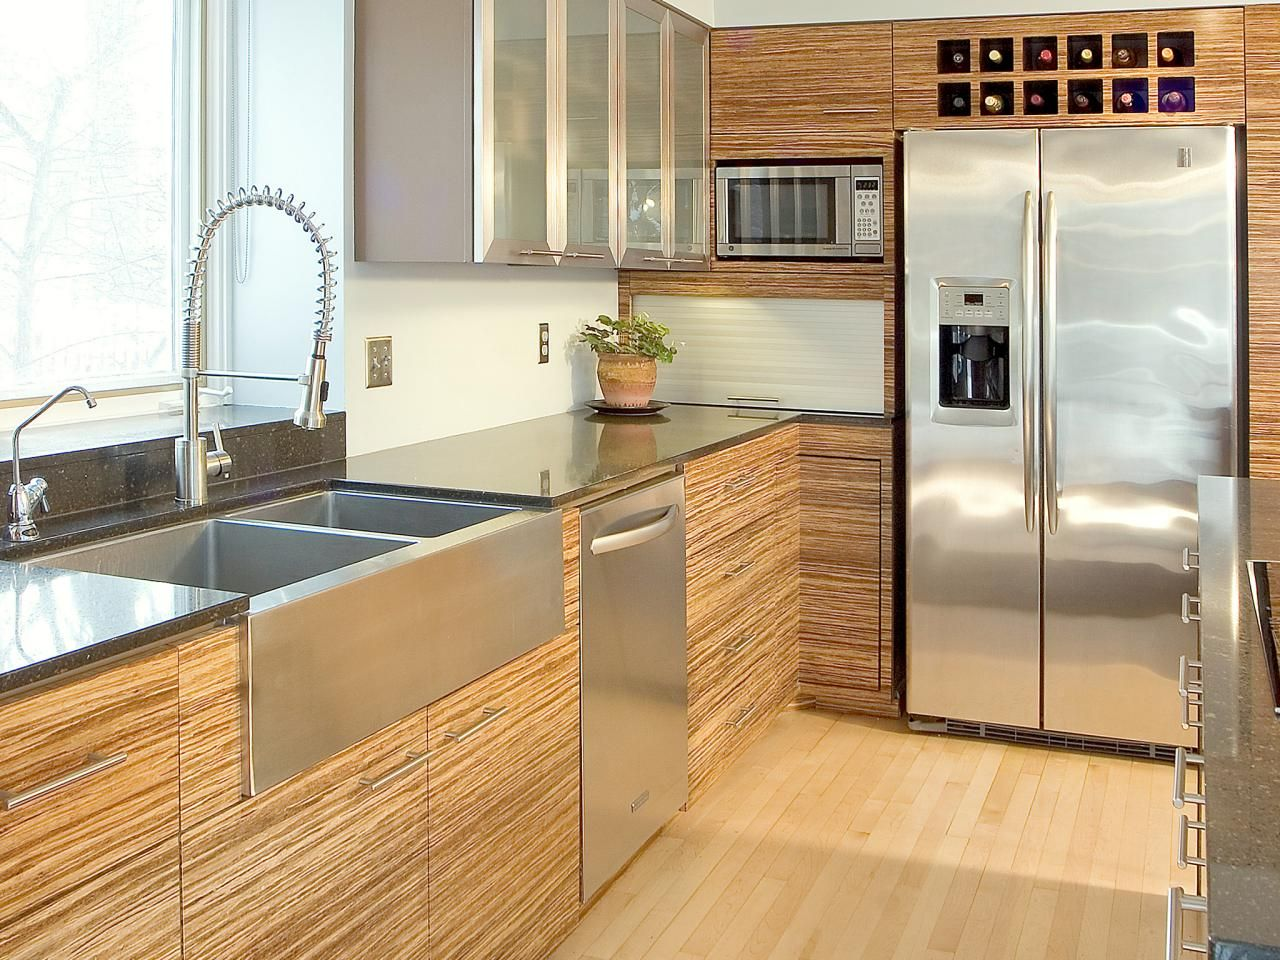 Bamboo Kitchen Cabinets Pictures Options Tips Ideas Kitchen Cabinet Styles Bamboo Kitchen Cabinets Modern Kitchen Cabinet Design